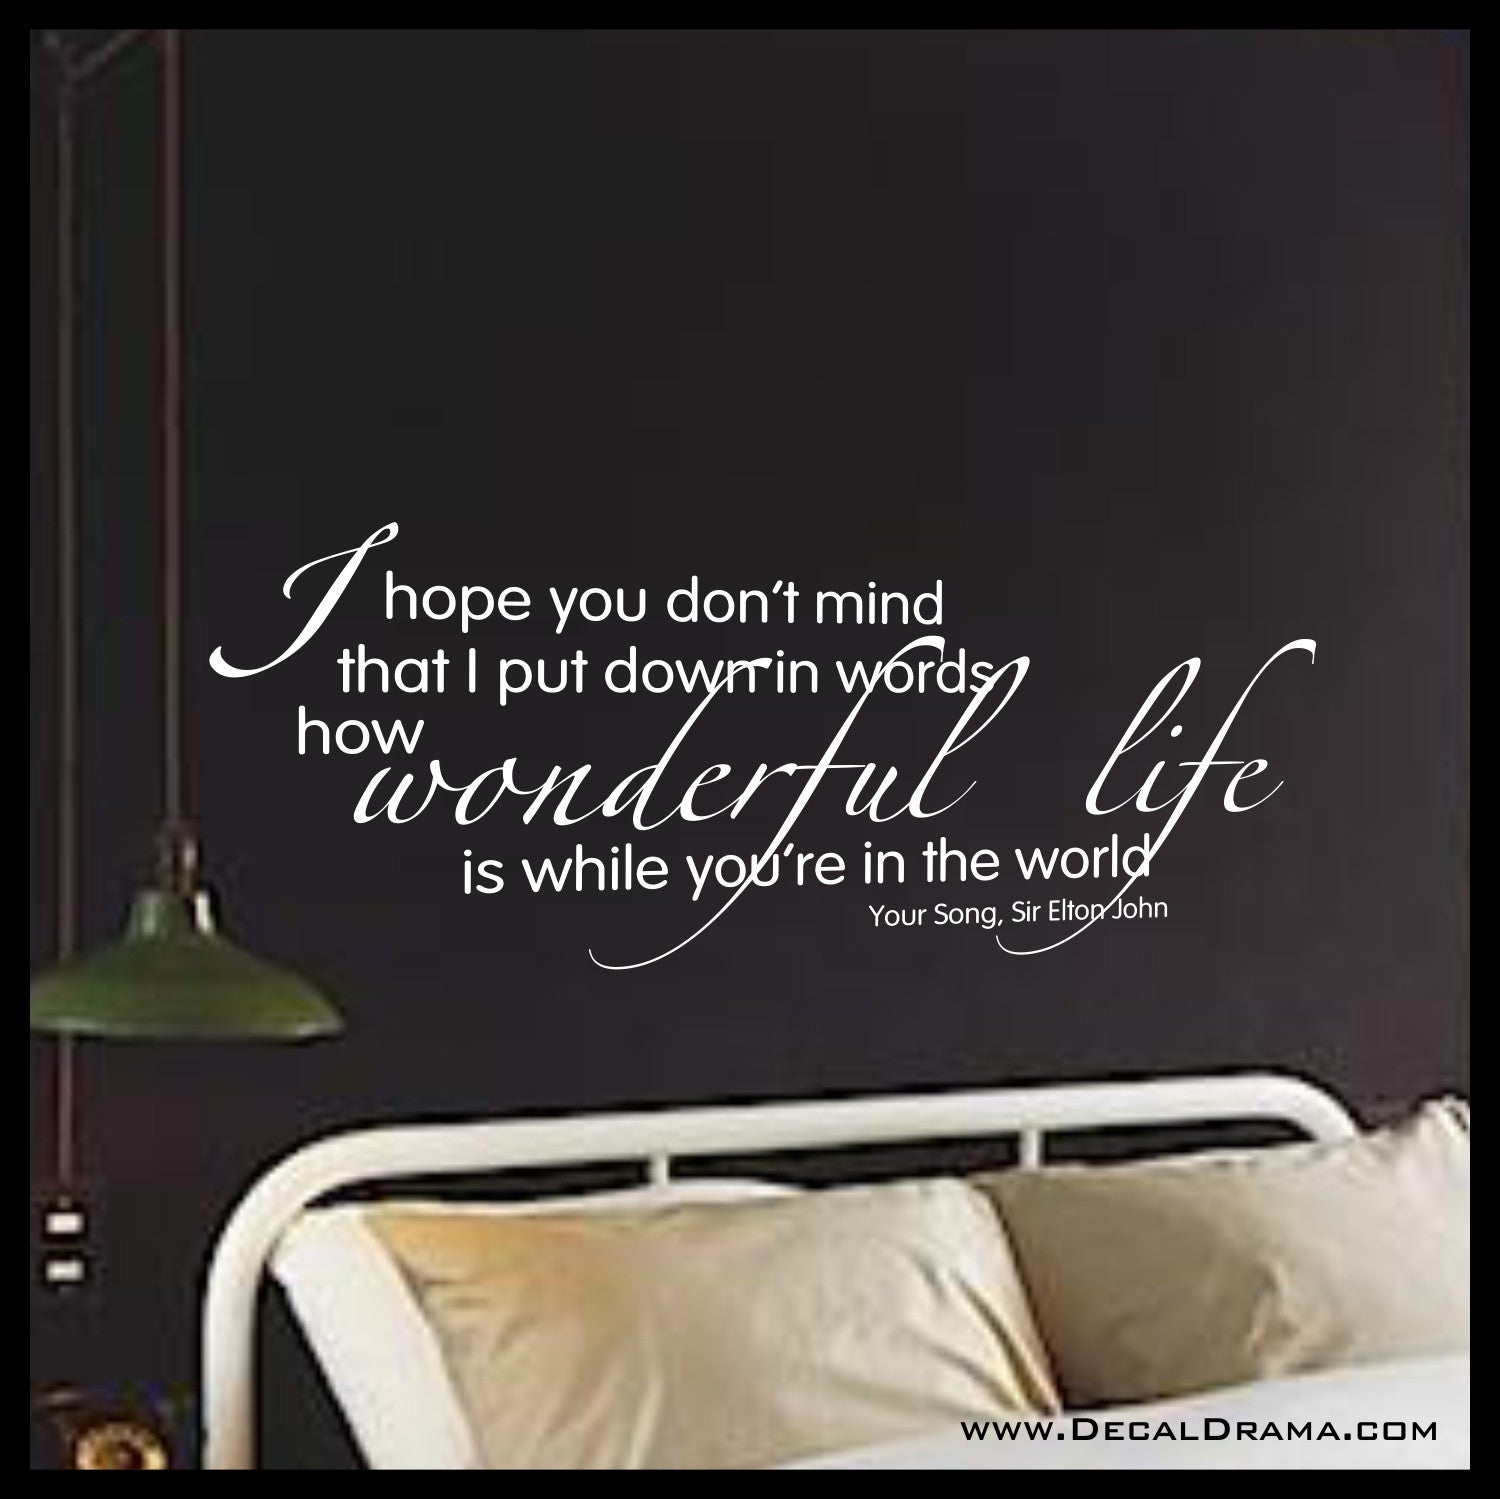 I Hope You Don't Mind How Wonderful Life Is, Elton John Your Song lyric, Vinyl Wall Decal